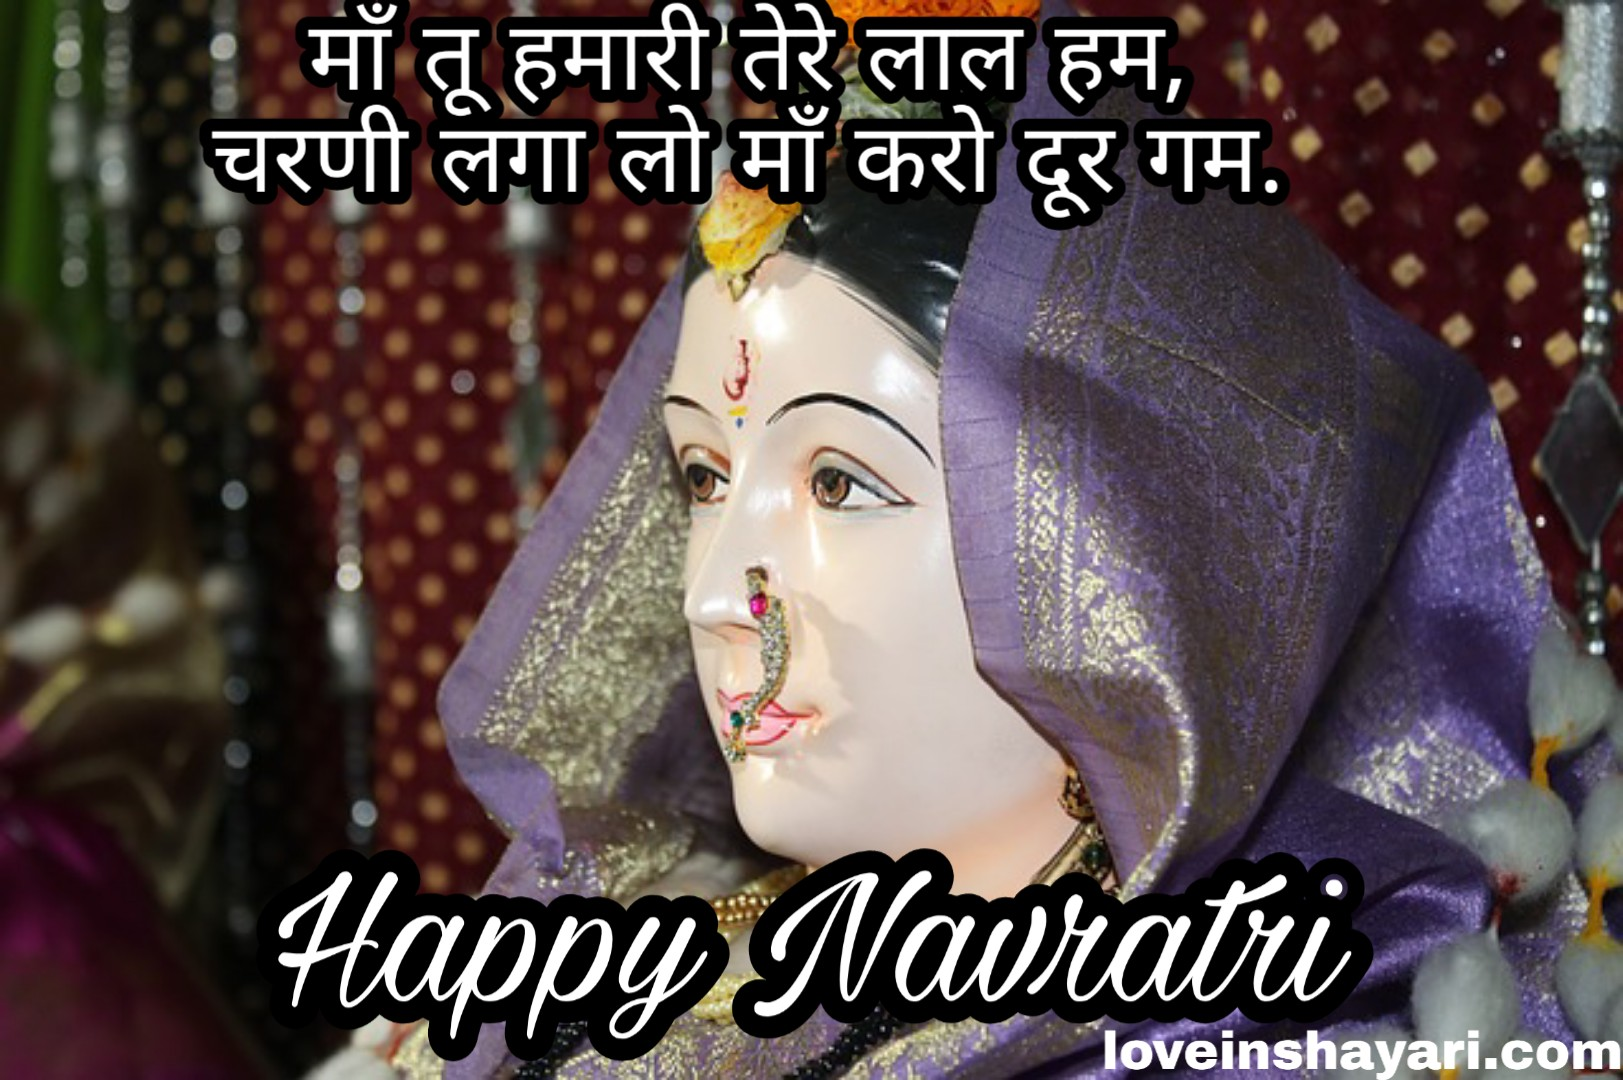 Photo of Navratri wishes message quotes 2020